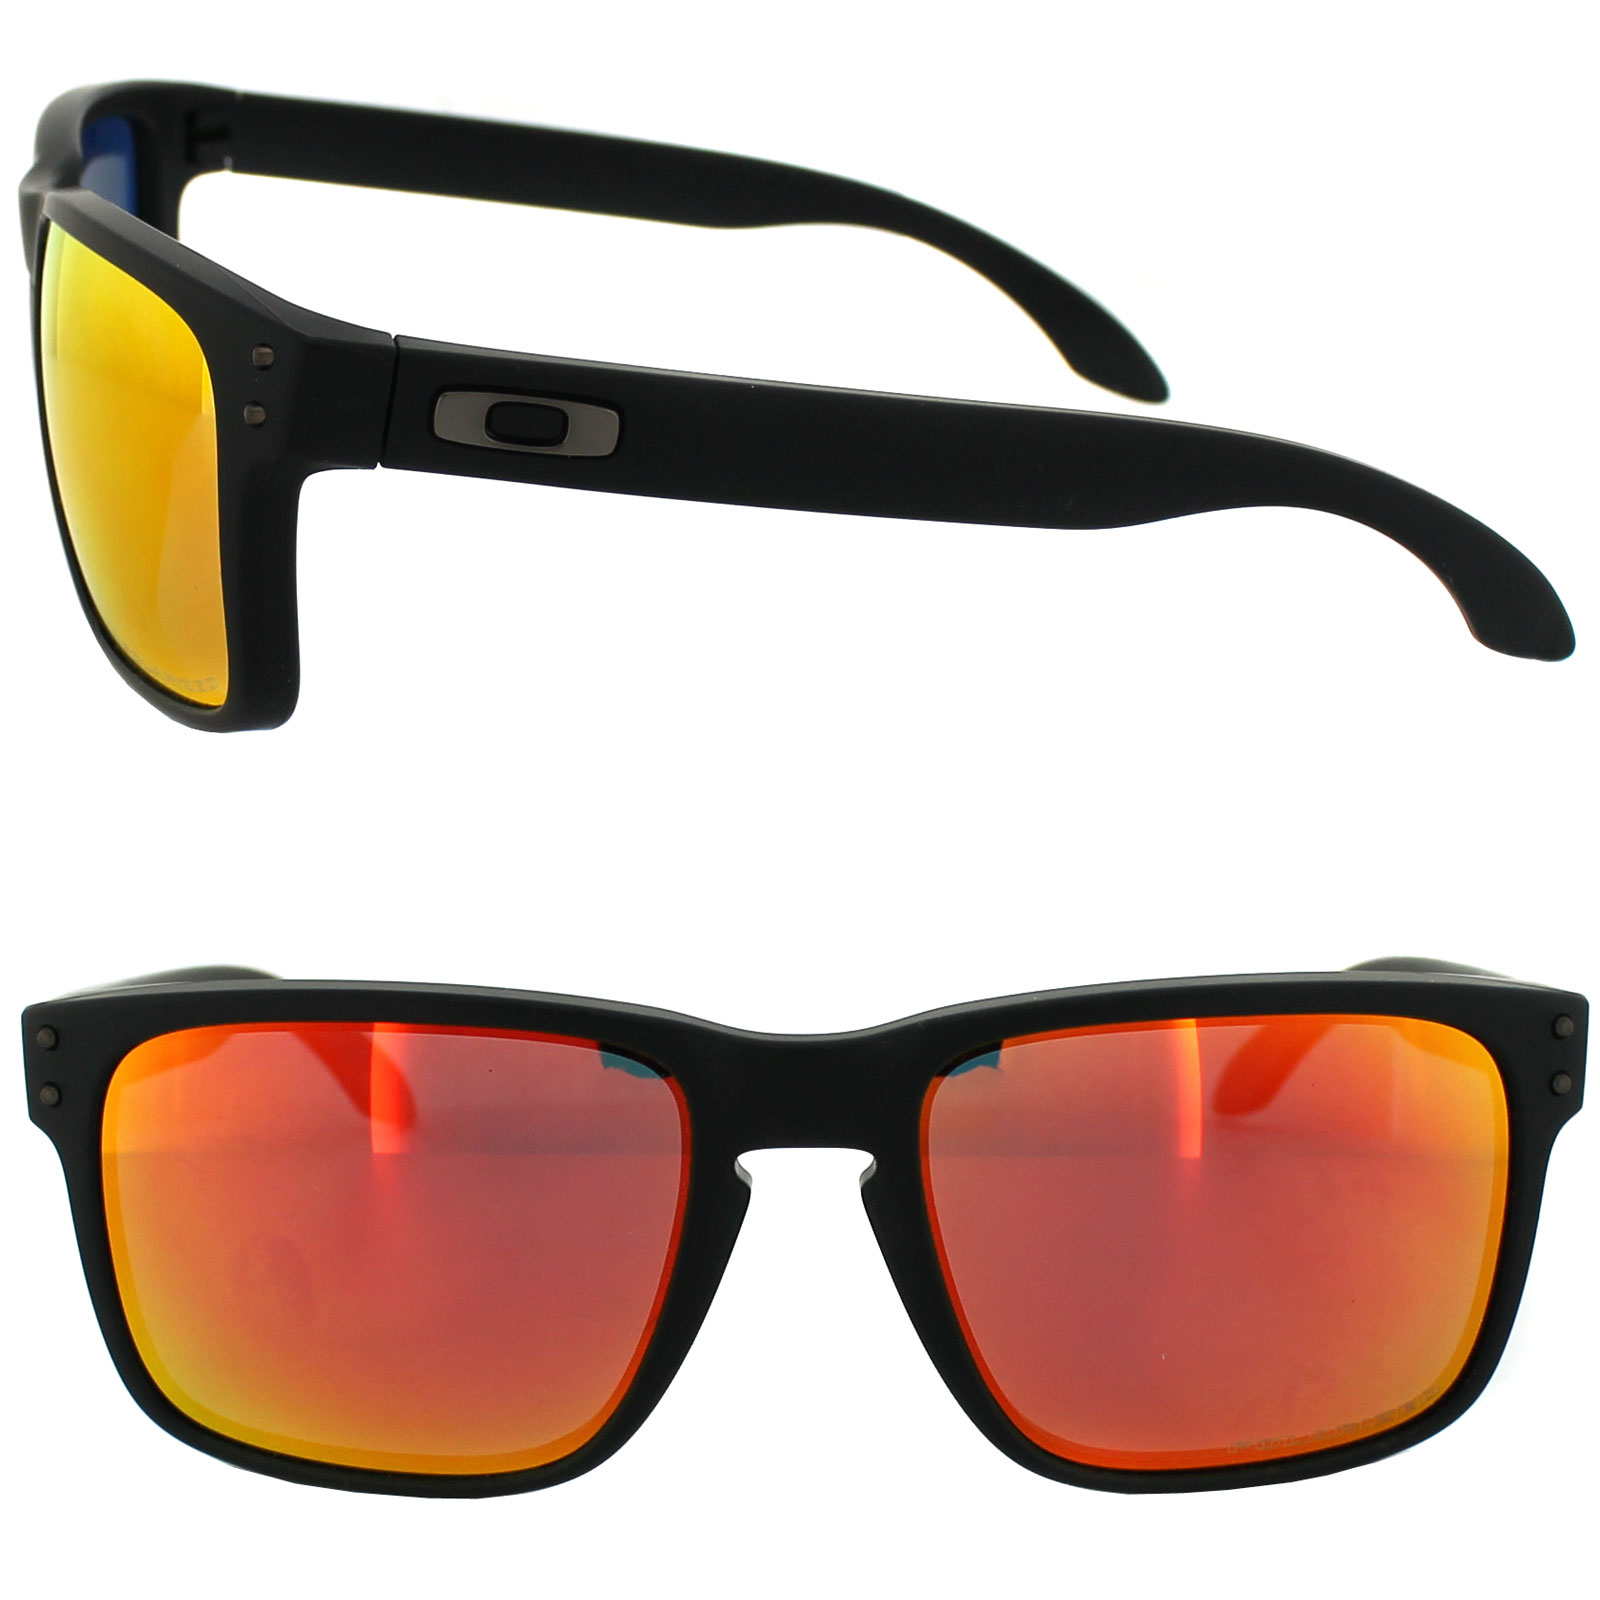 84fd2220e07 Oakley Sunglasses On Ebay « One More Soul